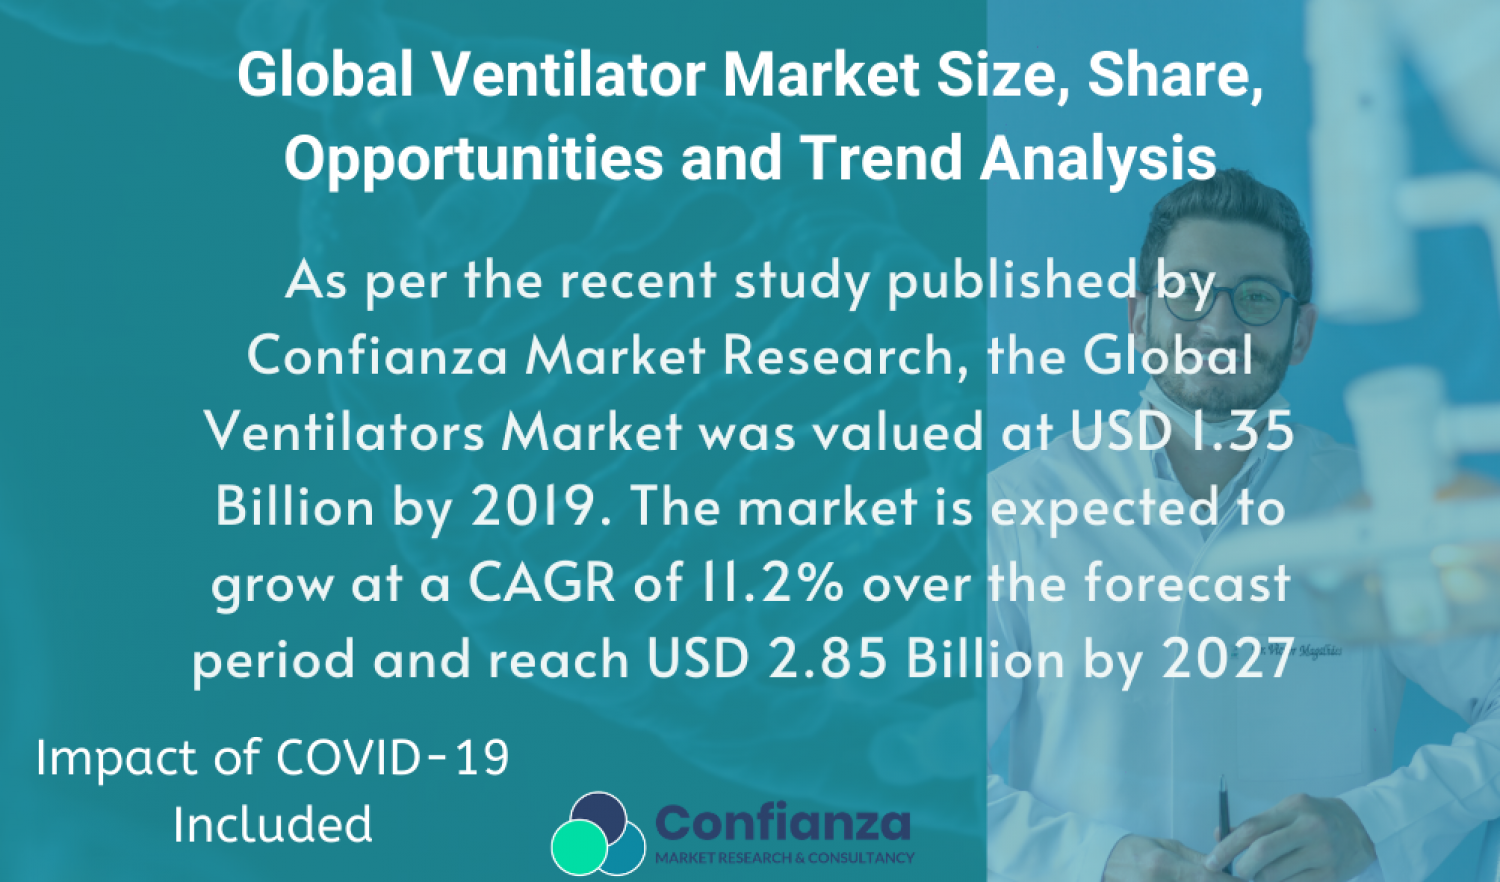 Global Ventilator Market Size, Share, Opportunities and Trend Analysis 2019 - 2027 I Confianza Research Infographic